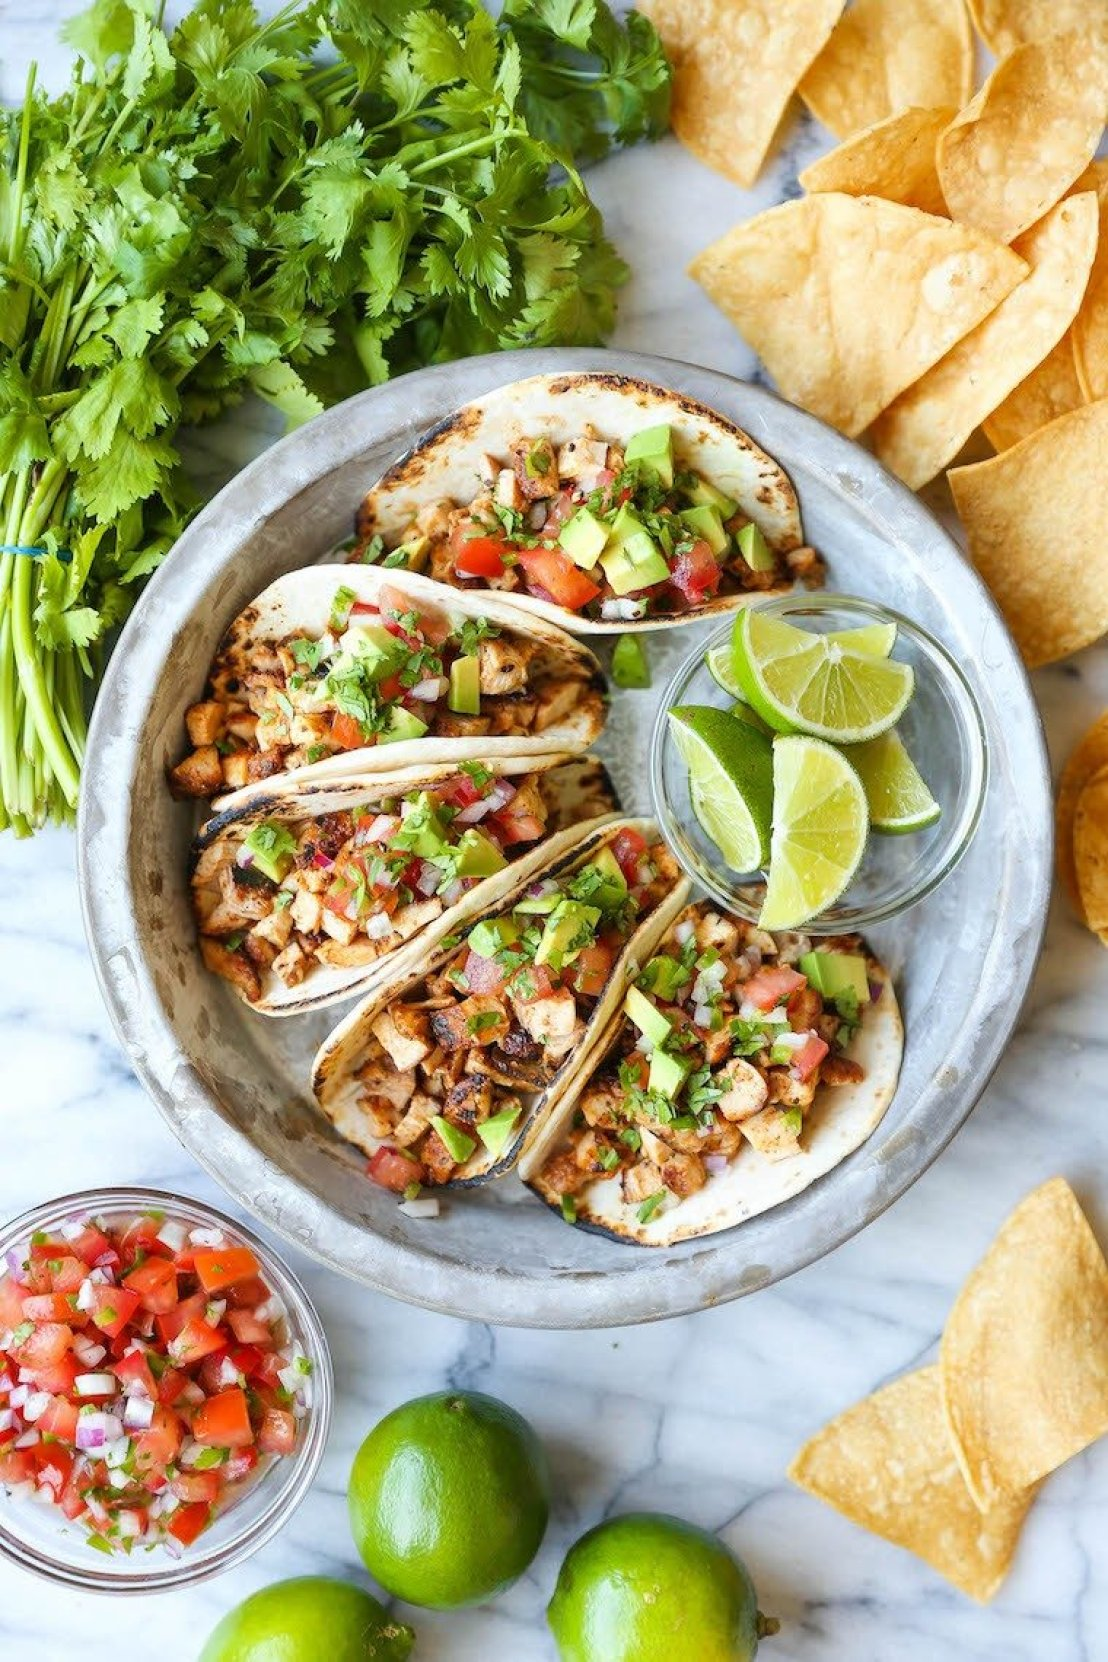 10 Best Chicken Tacos Recipes To Make